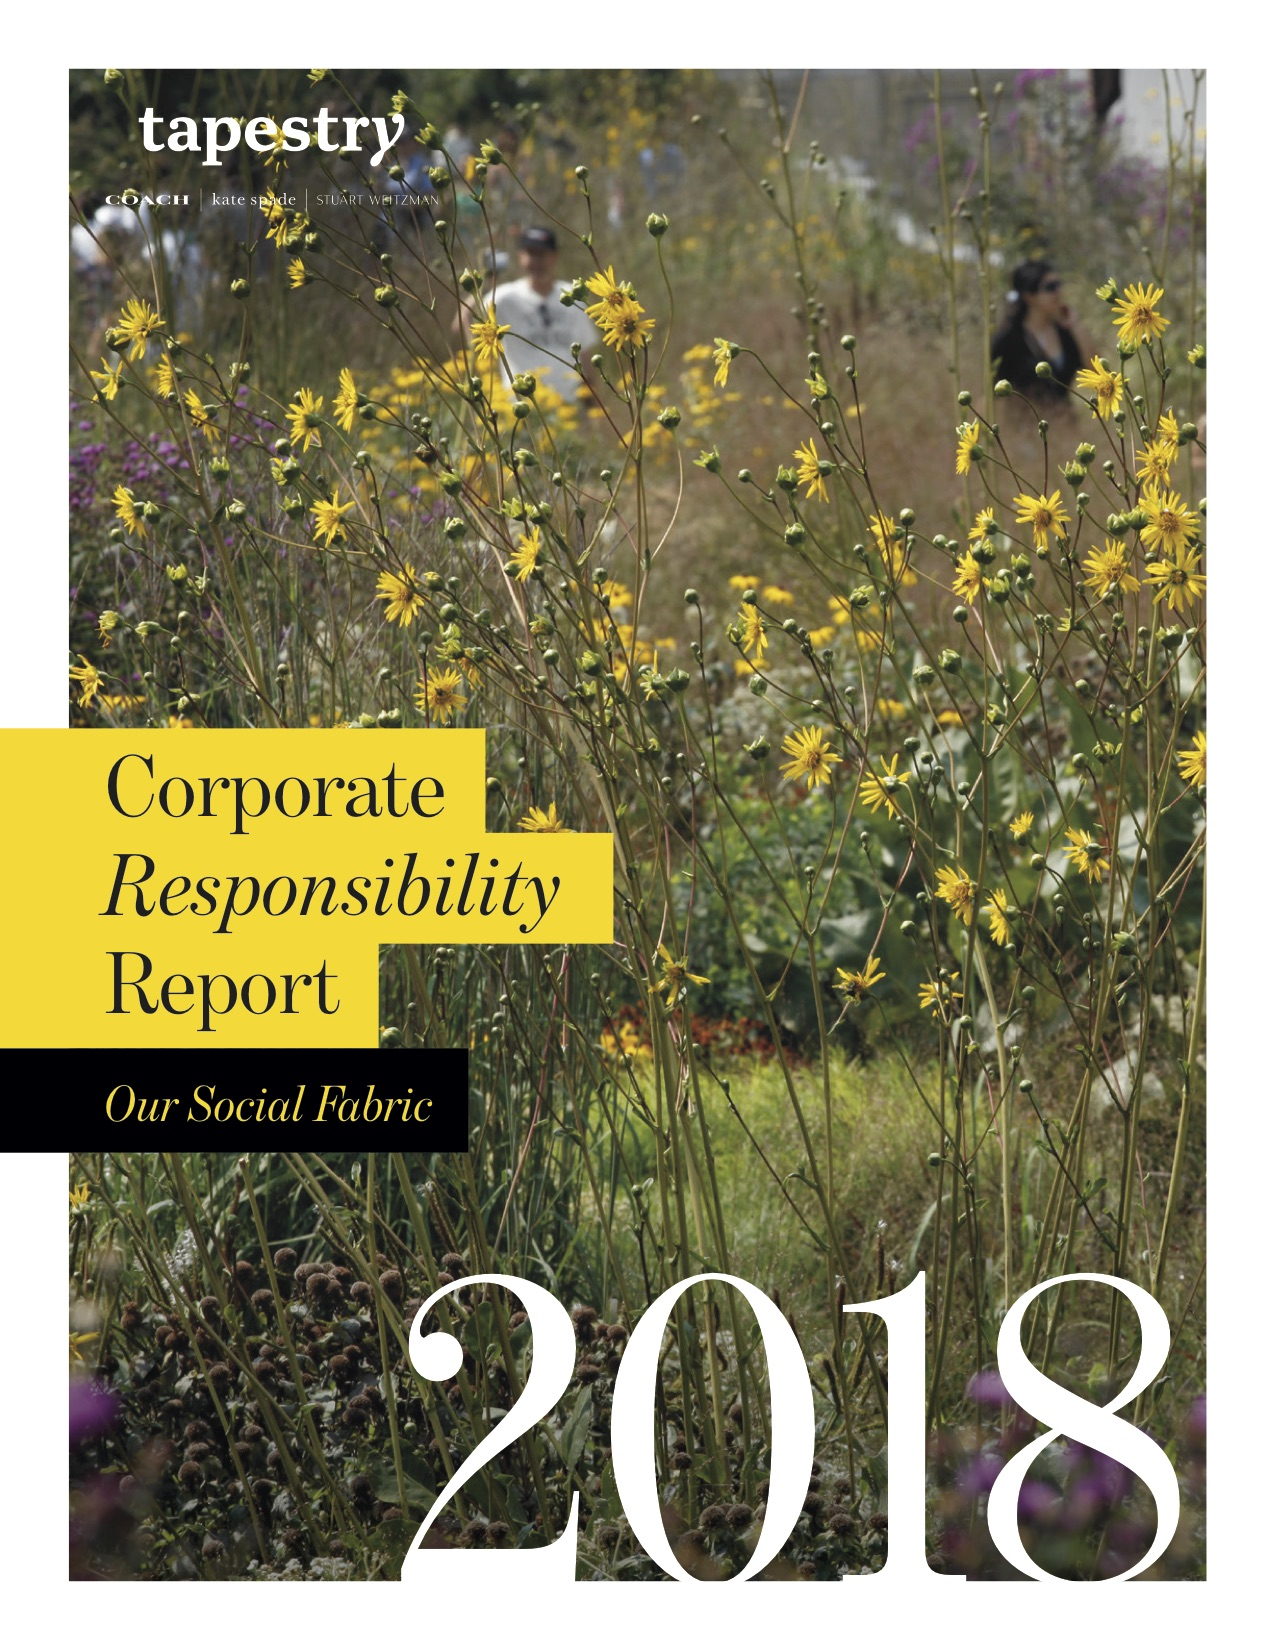 The Tapestry Corporate Responsibility Report.